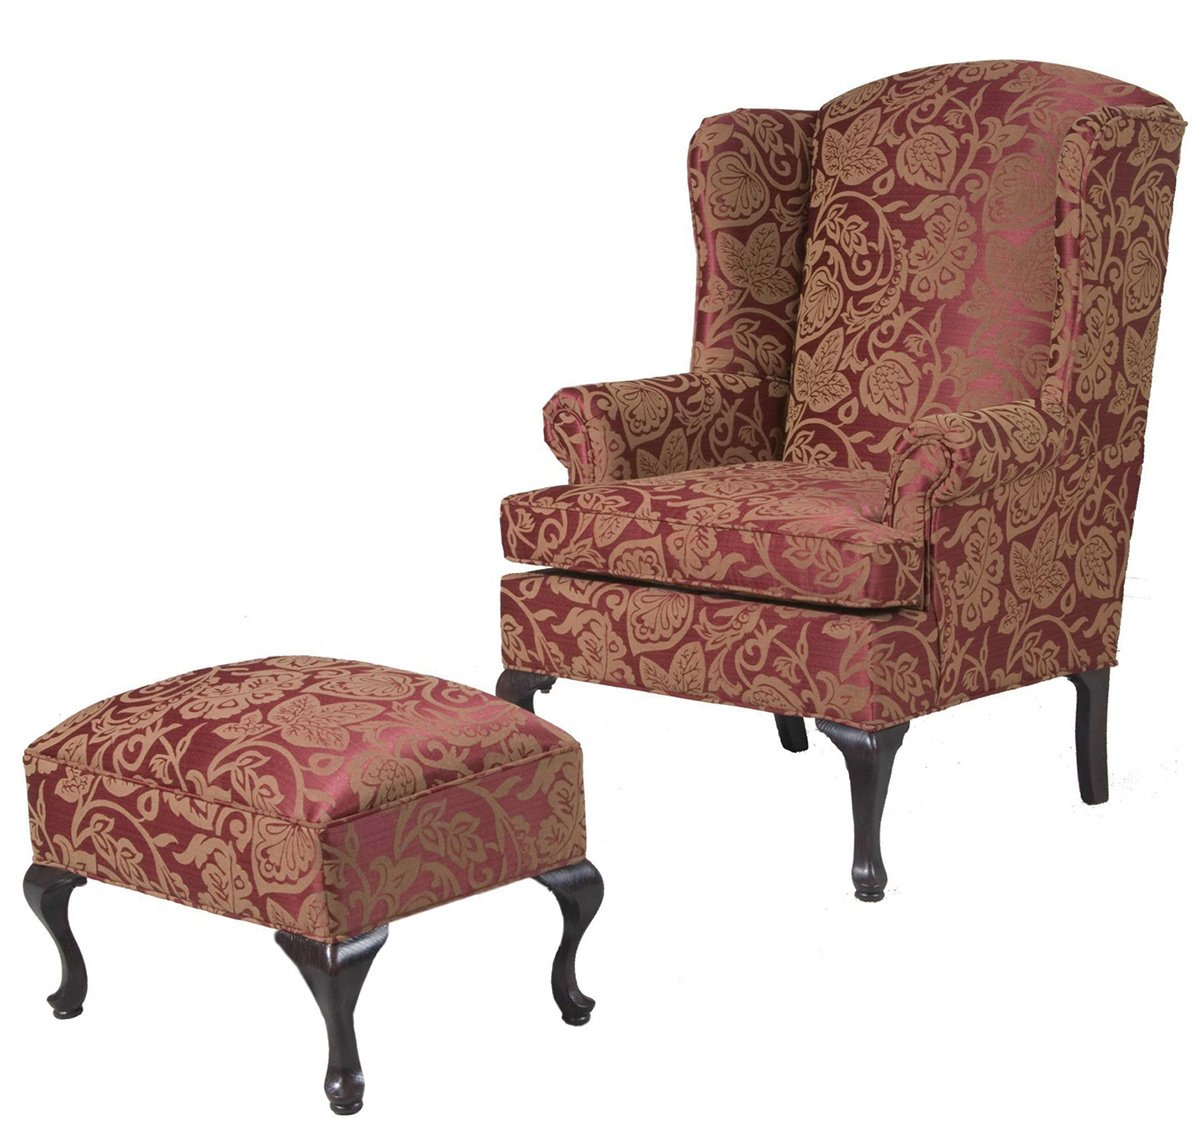 Brilliant Furniture Clearance Center Accent Chairs Forskolin Free Trial Chair Design Images Forskolin Free Trialorg